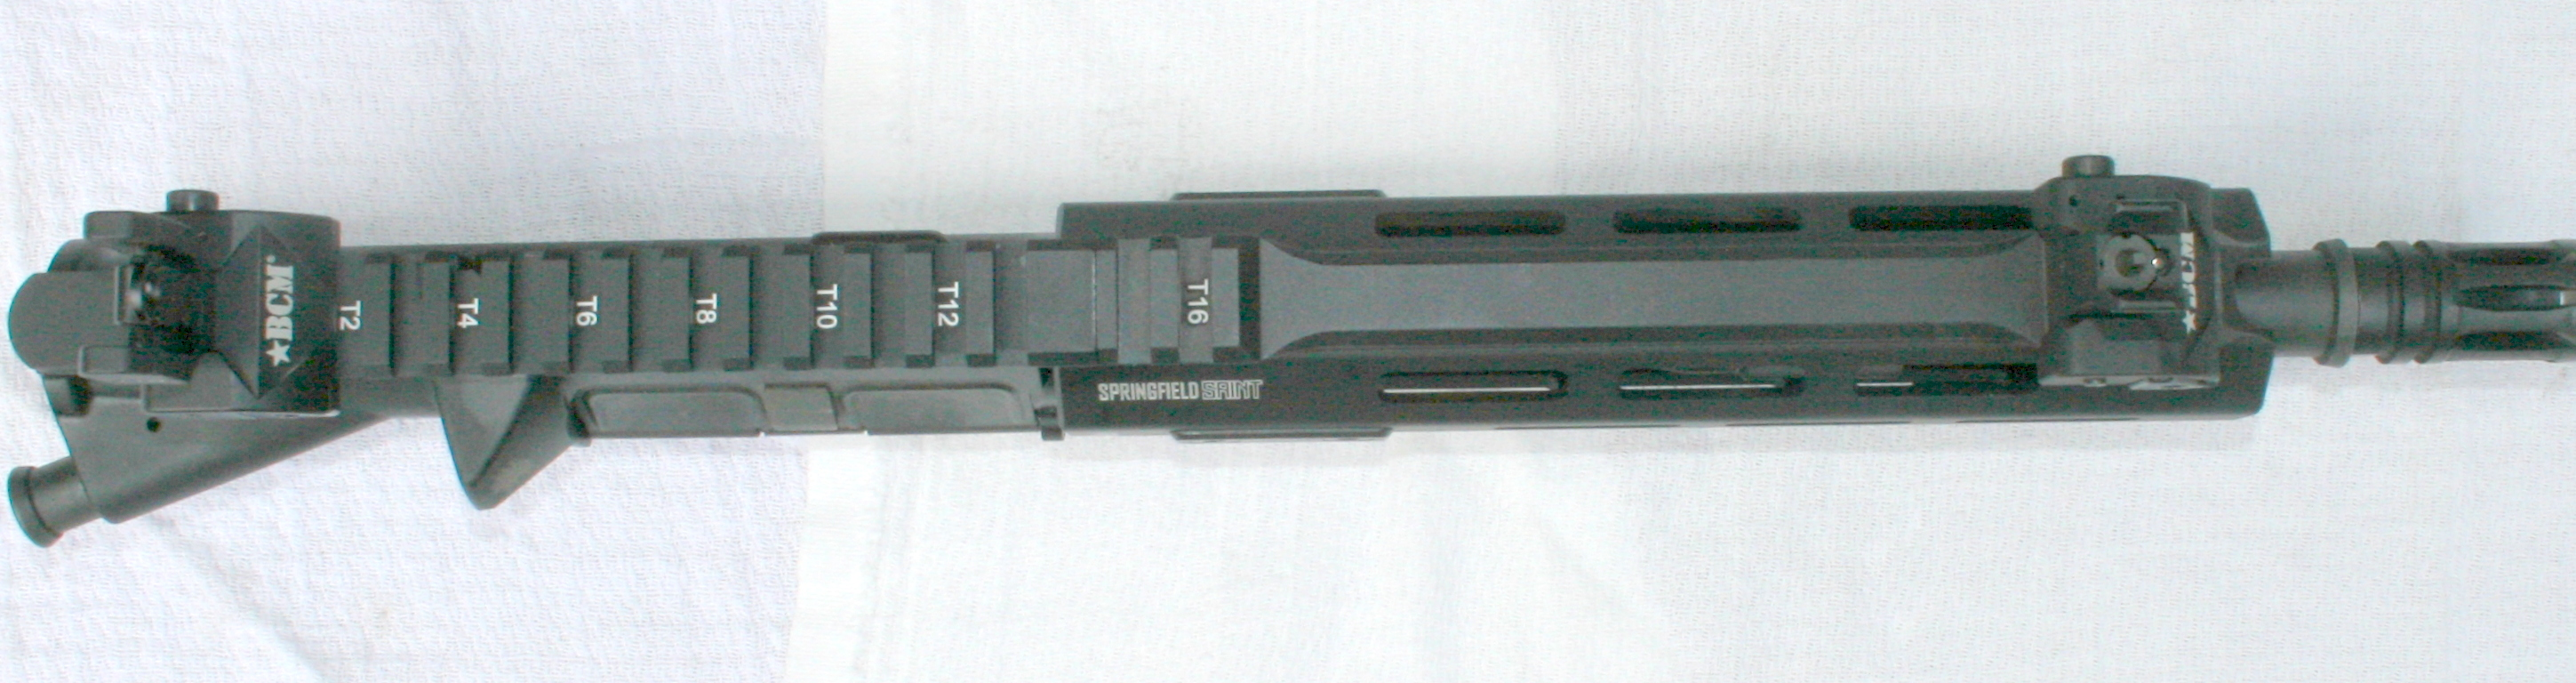 SAINT's top rail has numbered brackets for consistent mounting and remounting of sights.